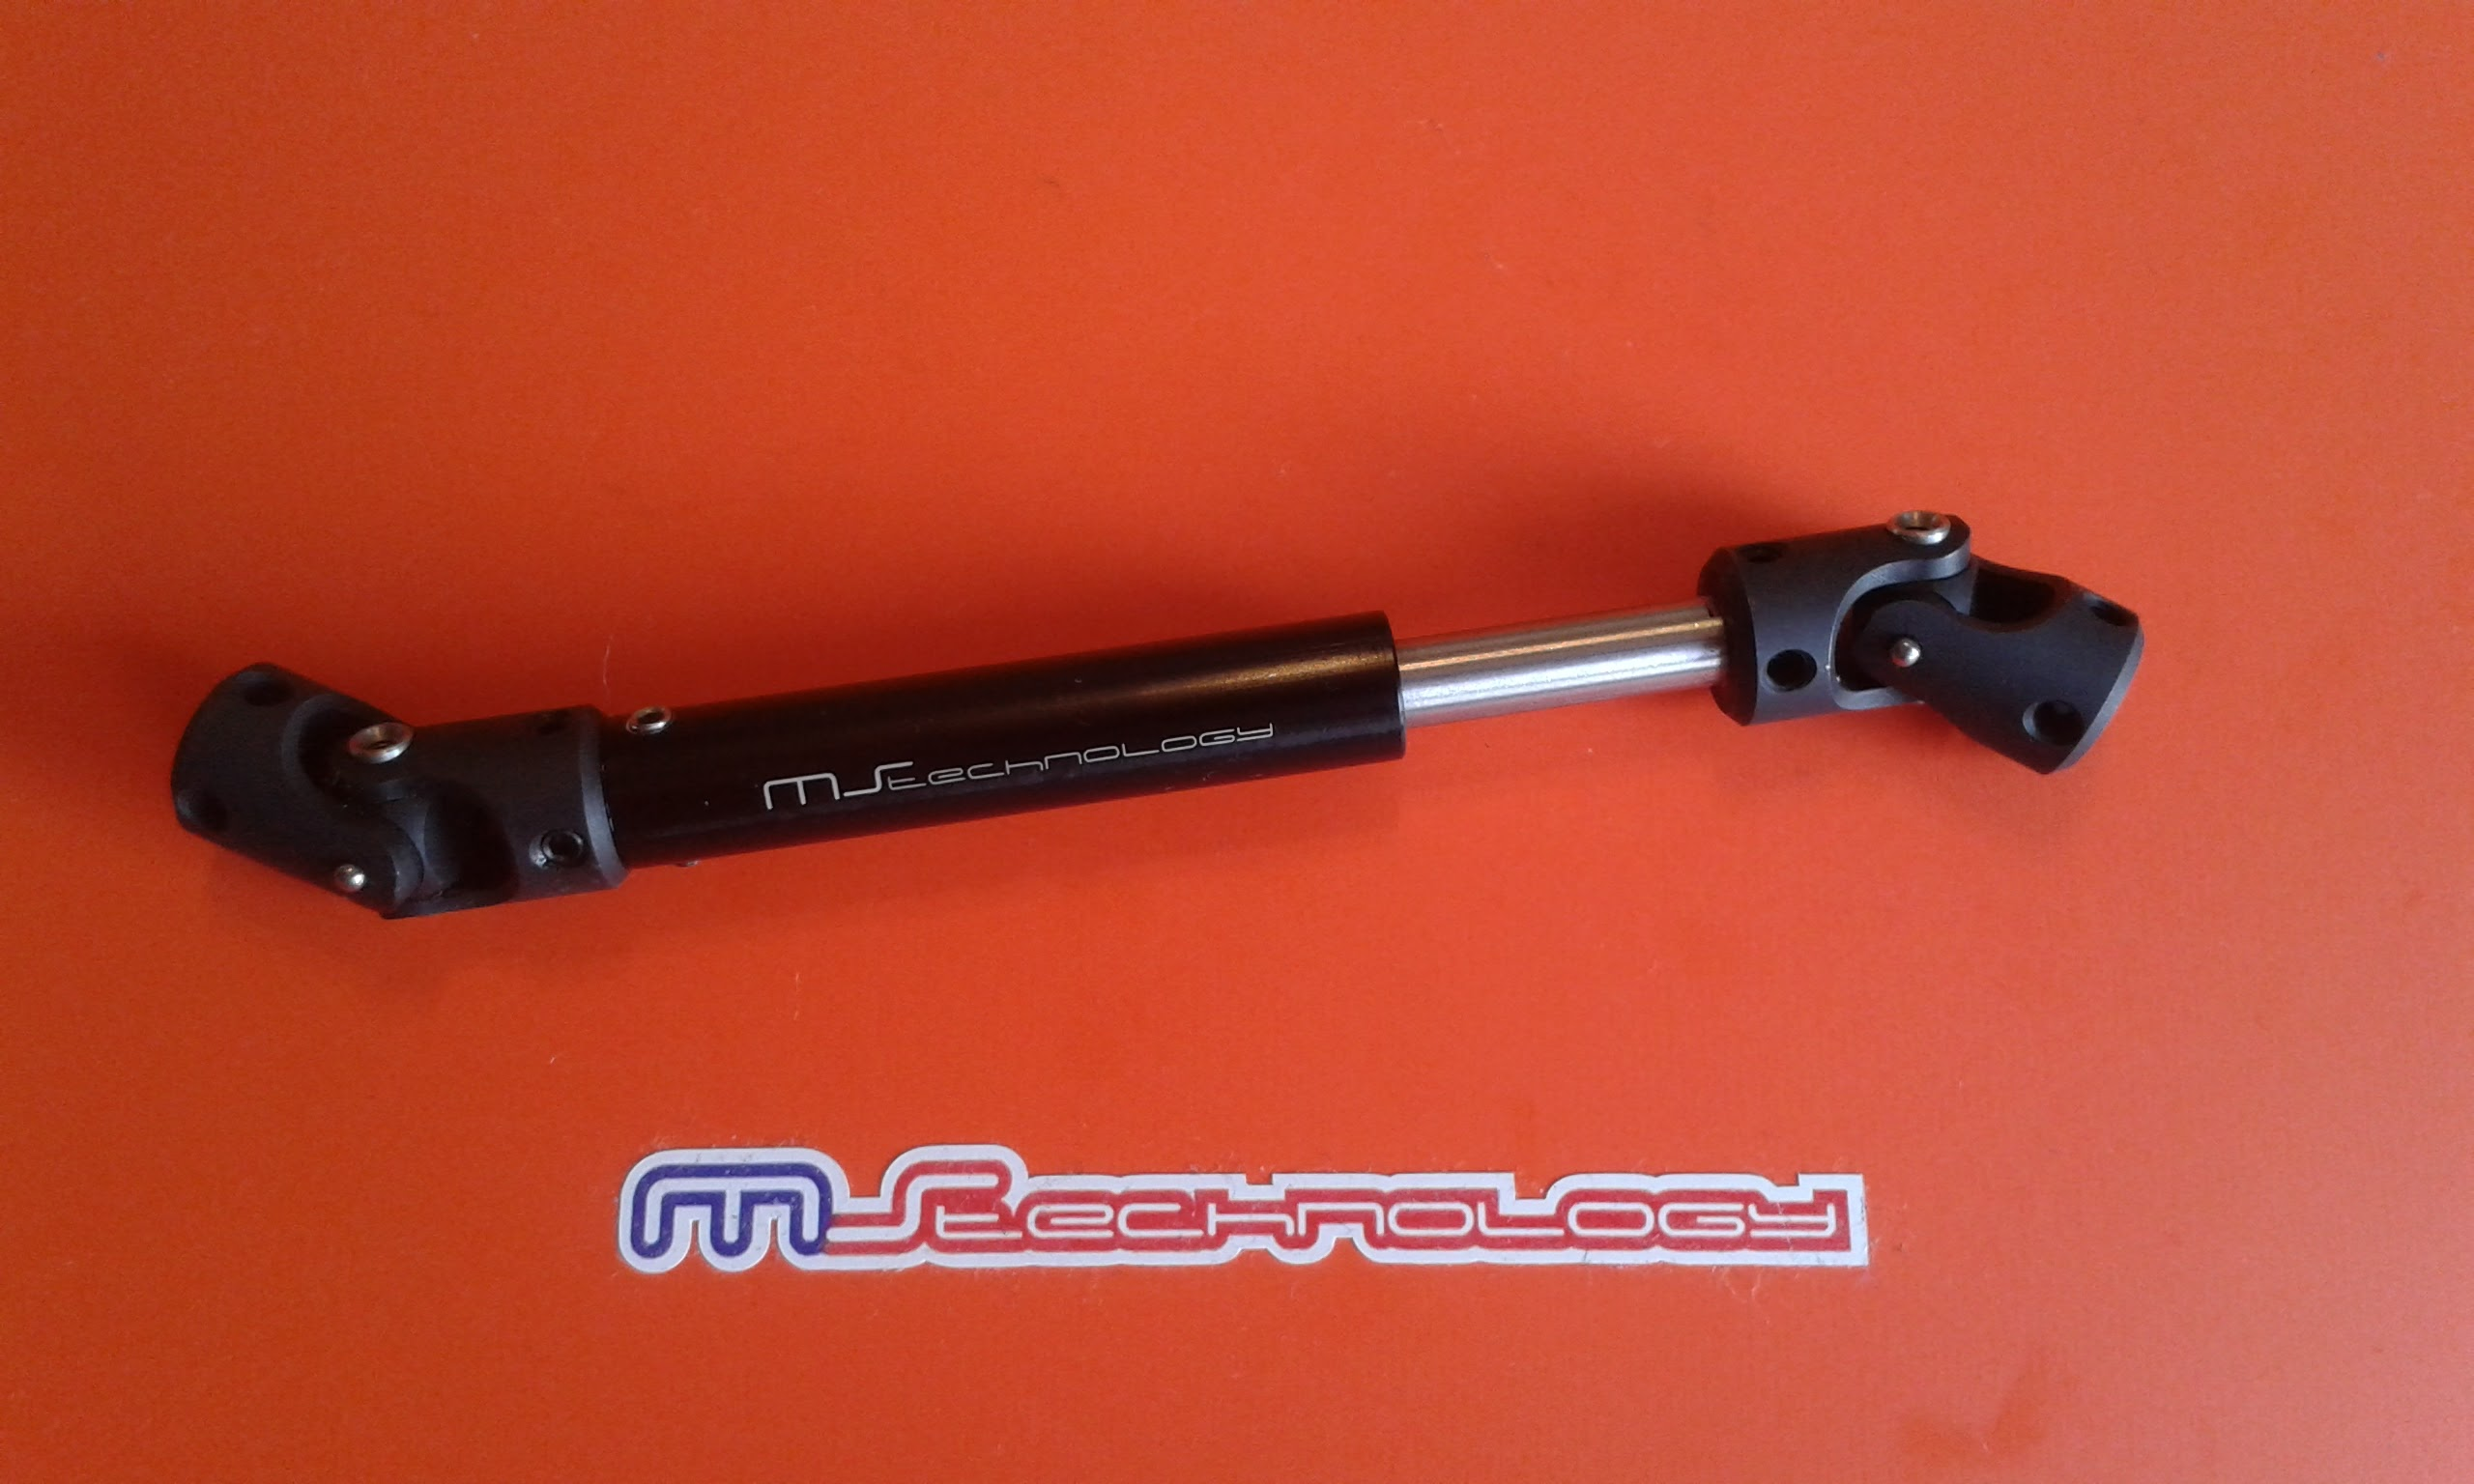 Kardan - Drive shaft D 12 ST L125/150mm 5x5mm